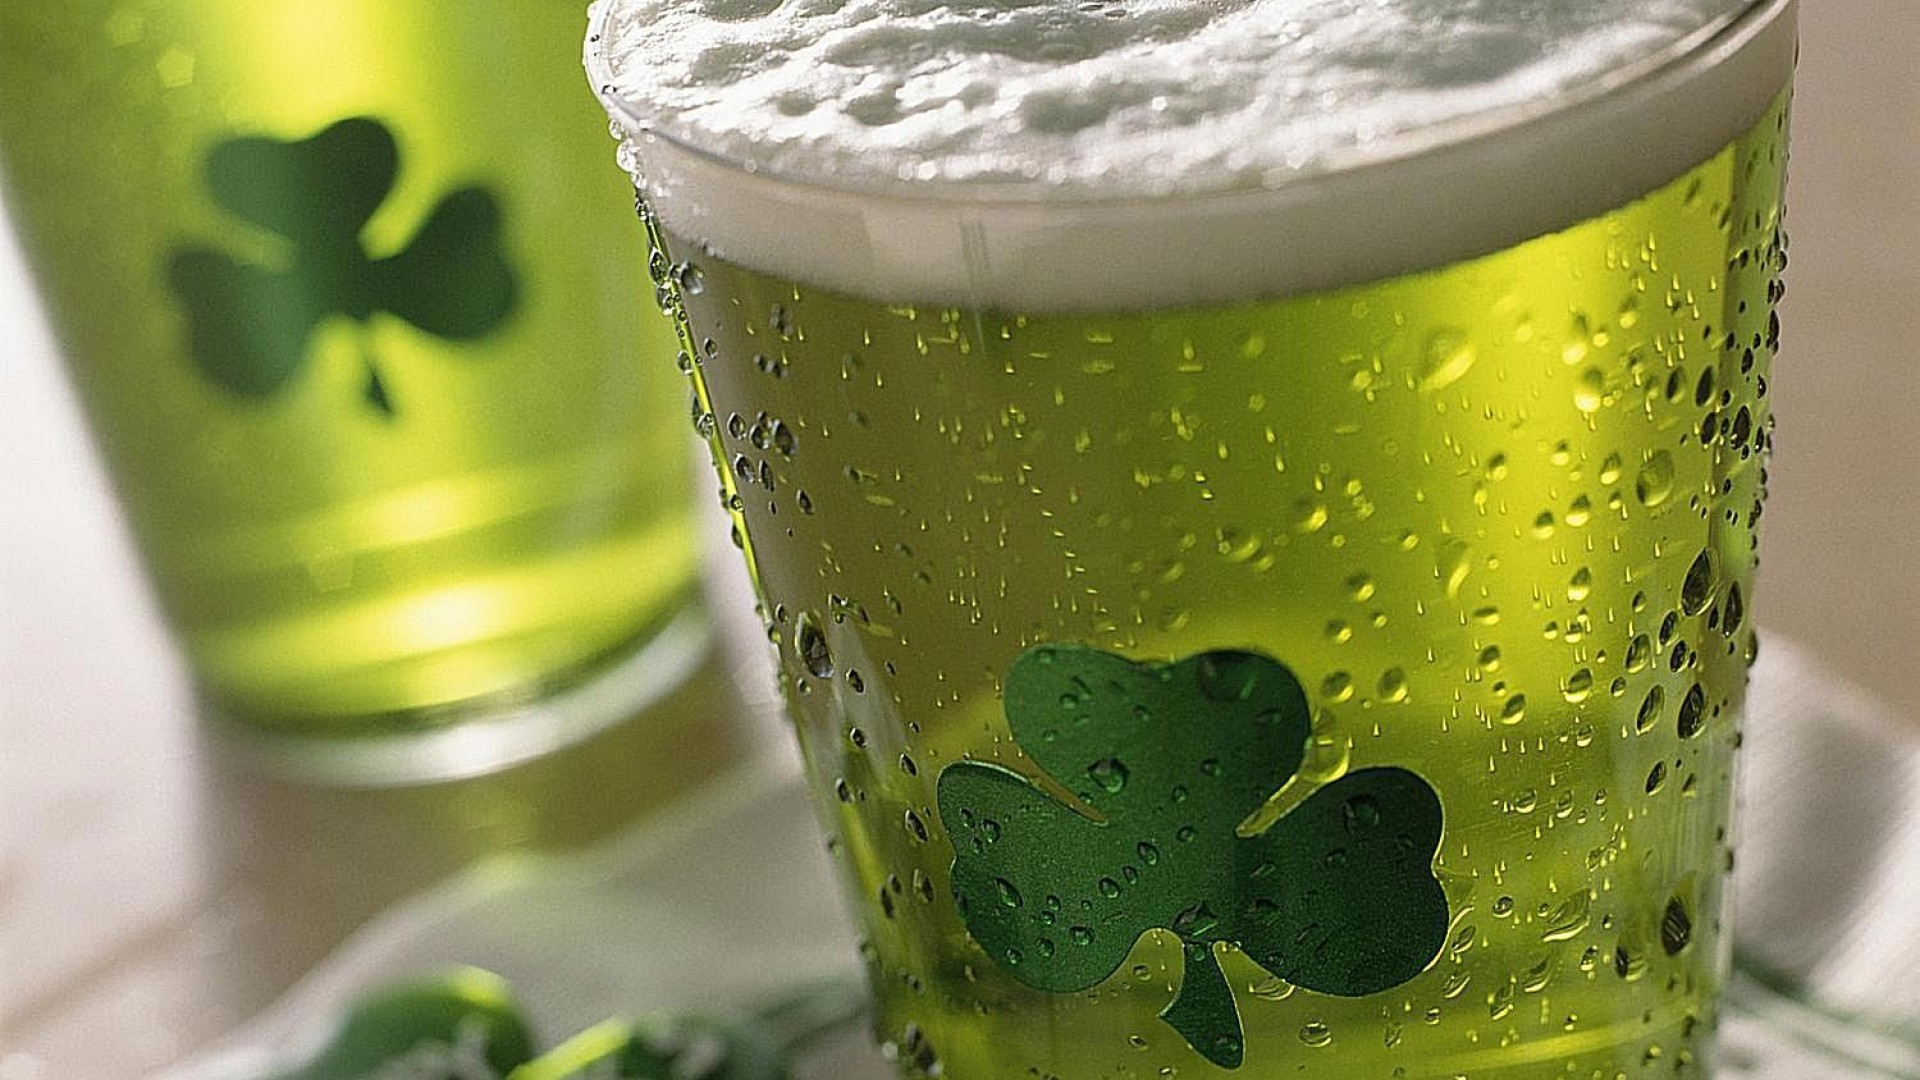 Join us for our annual St. Patrick's Day Party